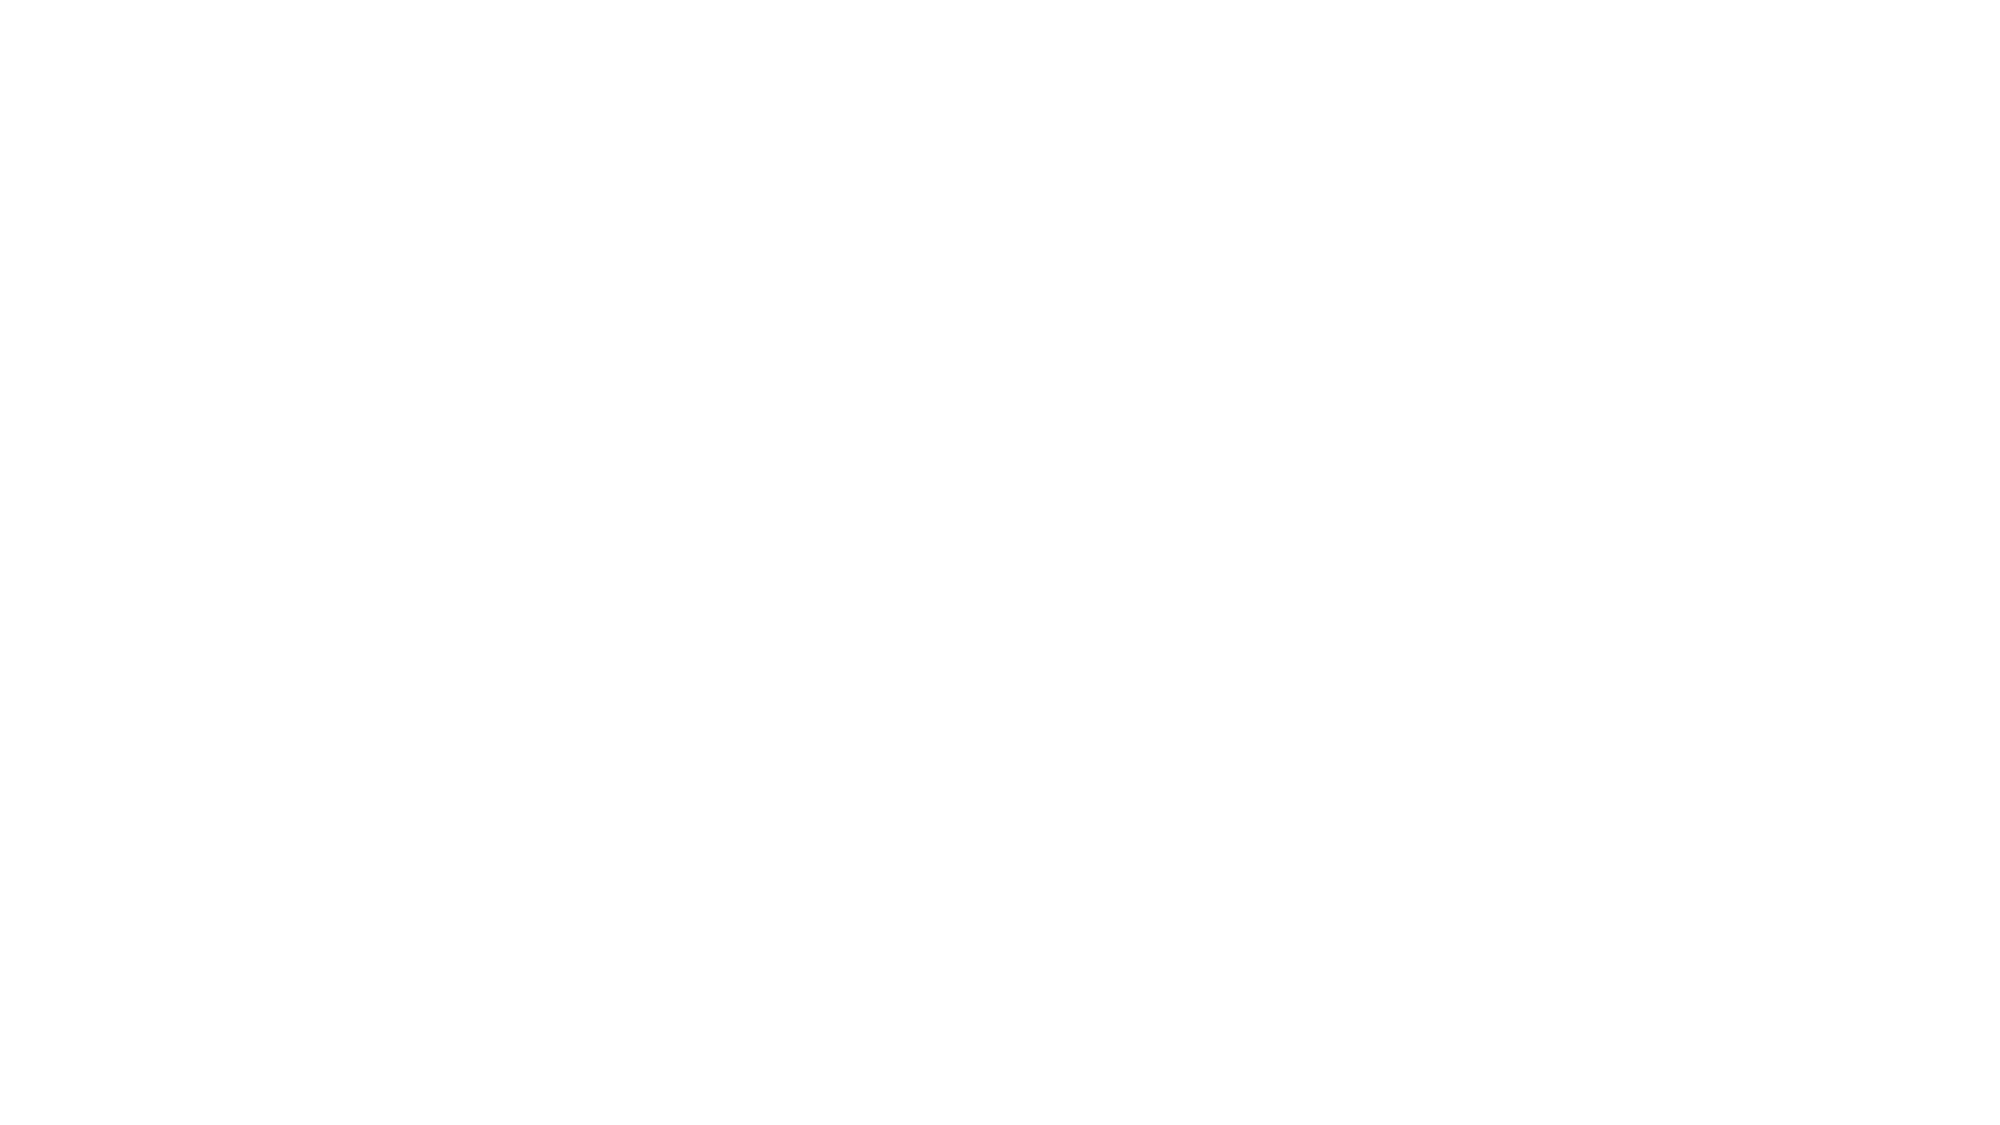 grassroottitle.png